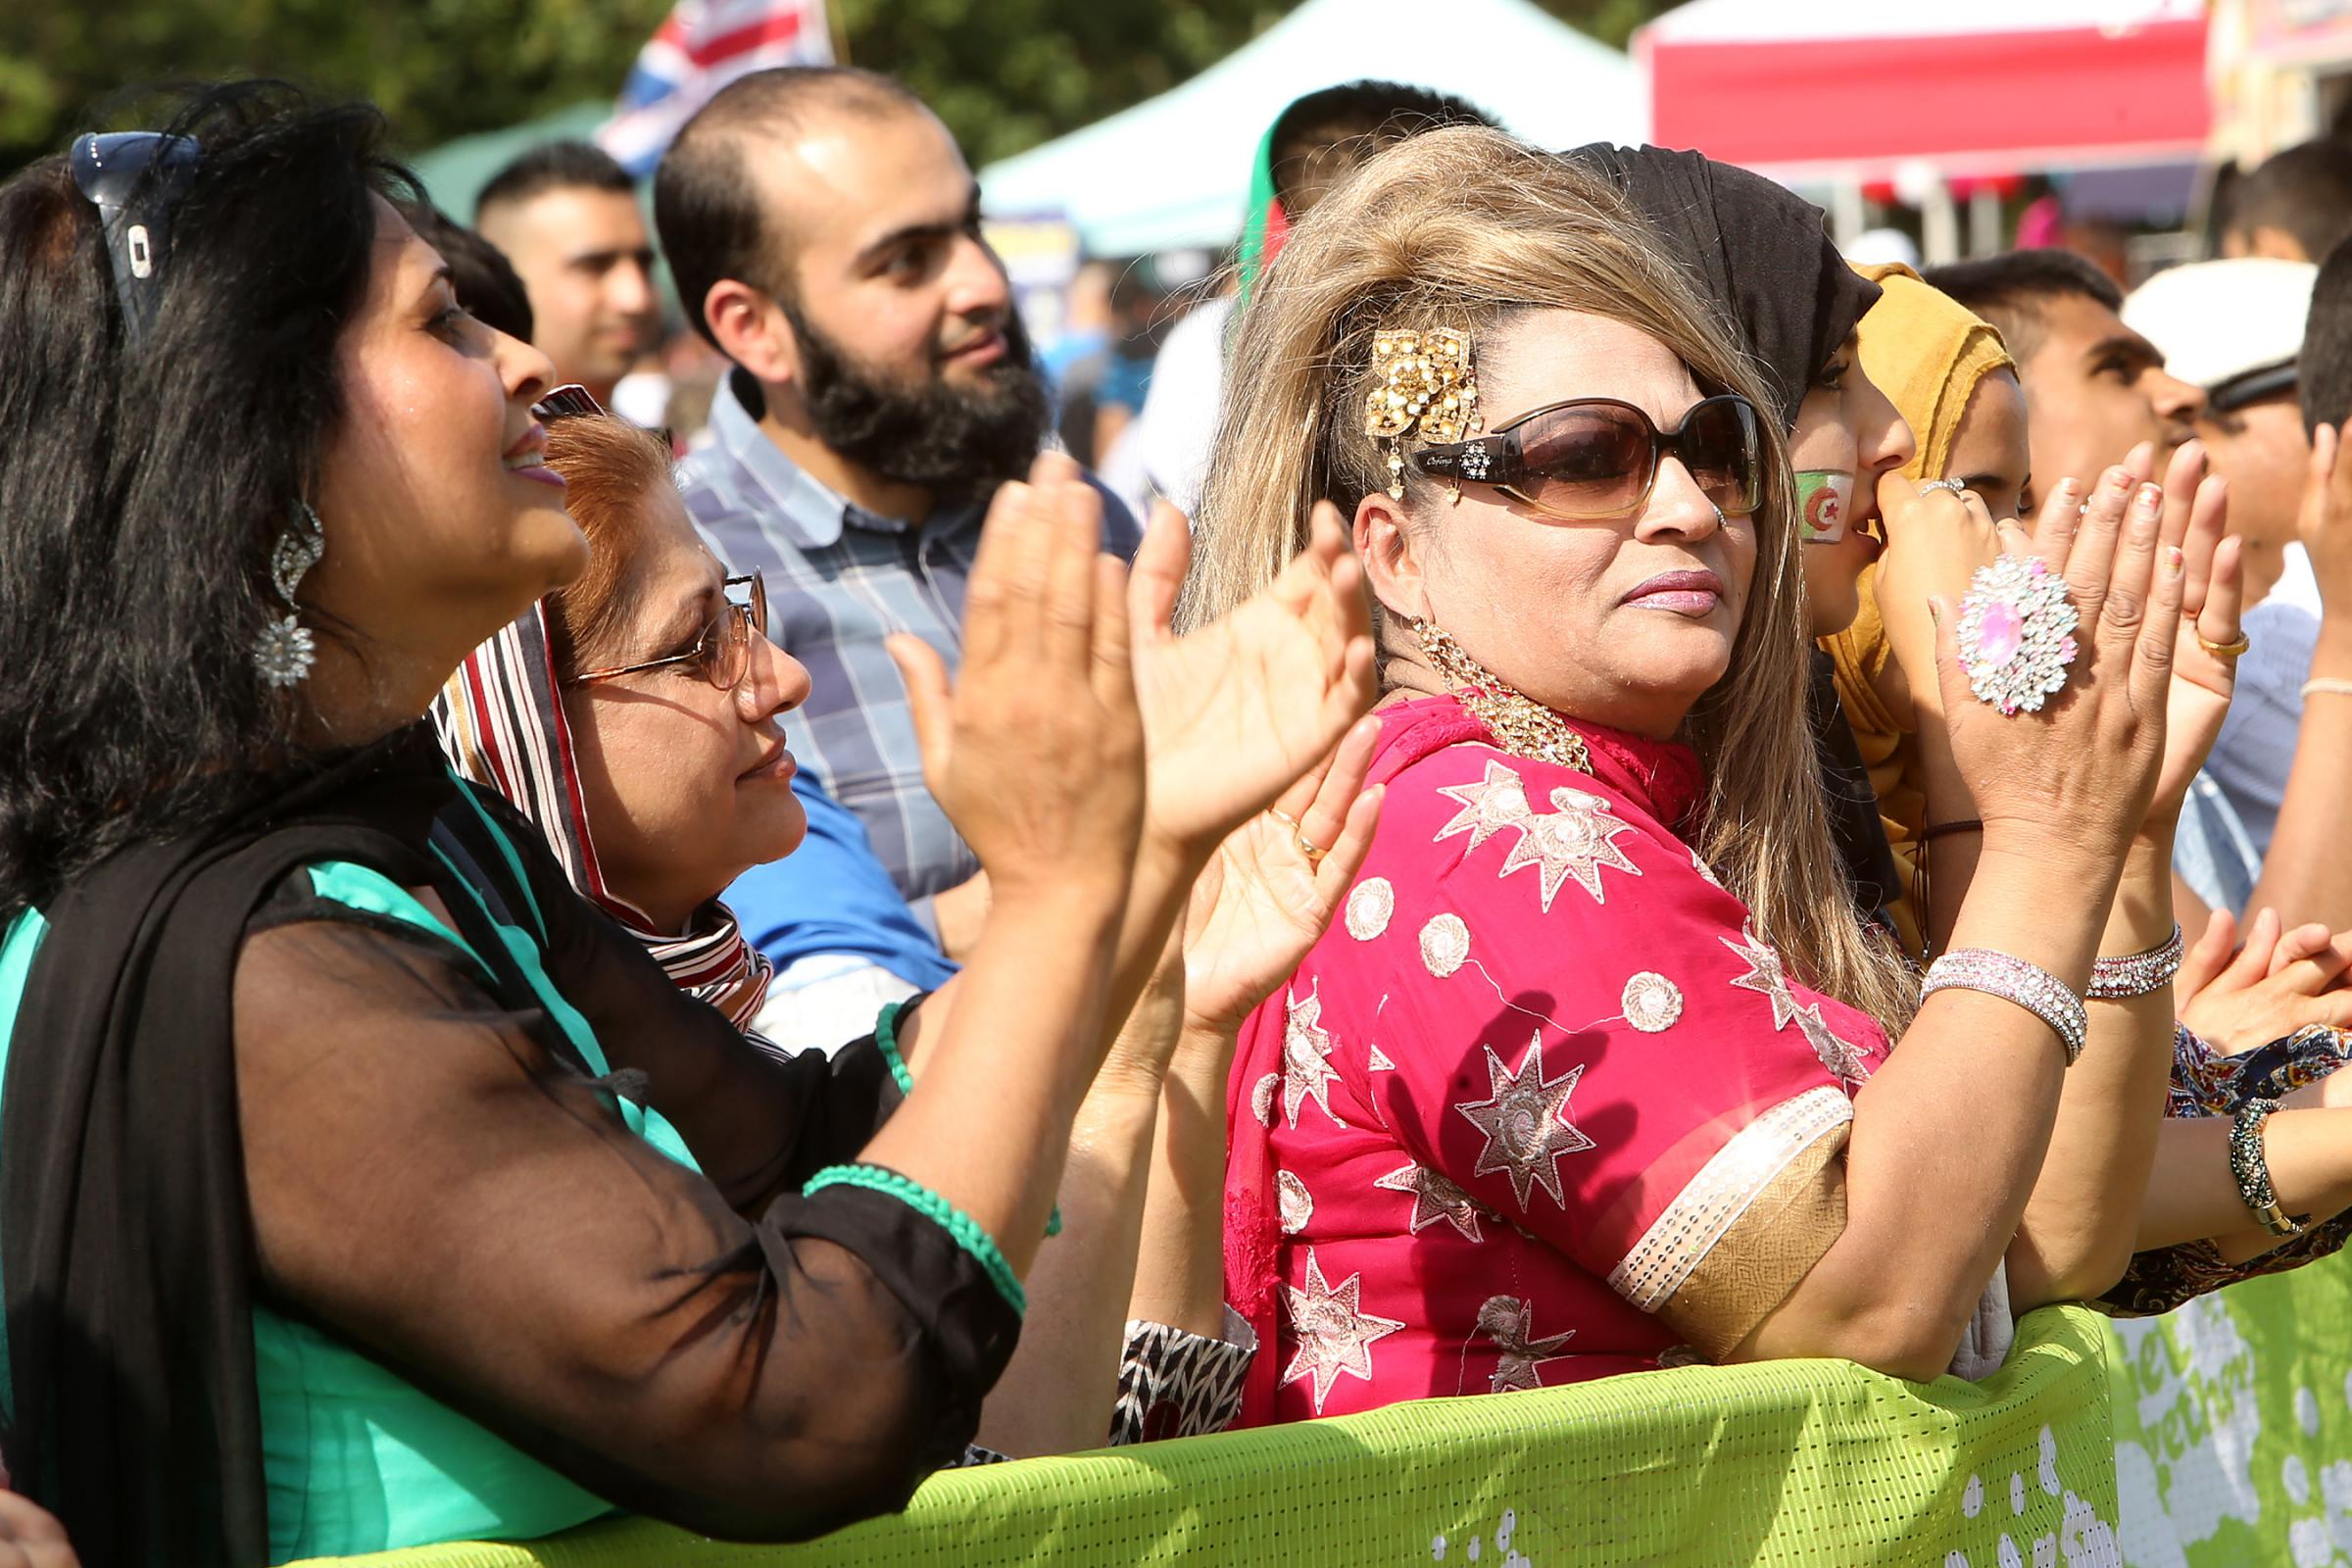 Festival celebrating Asian culture attracts huge crowds